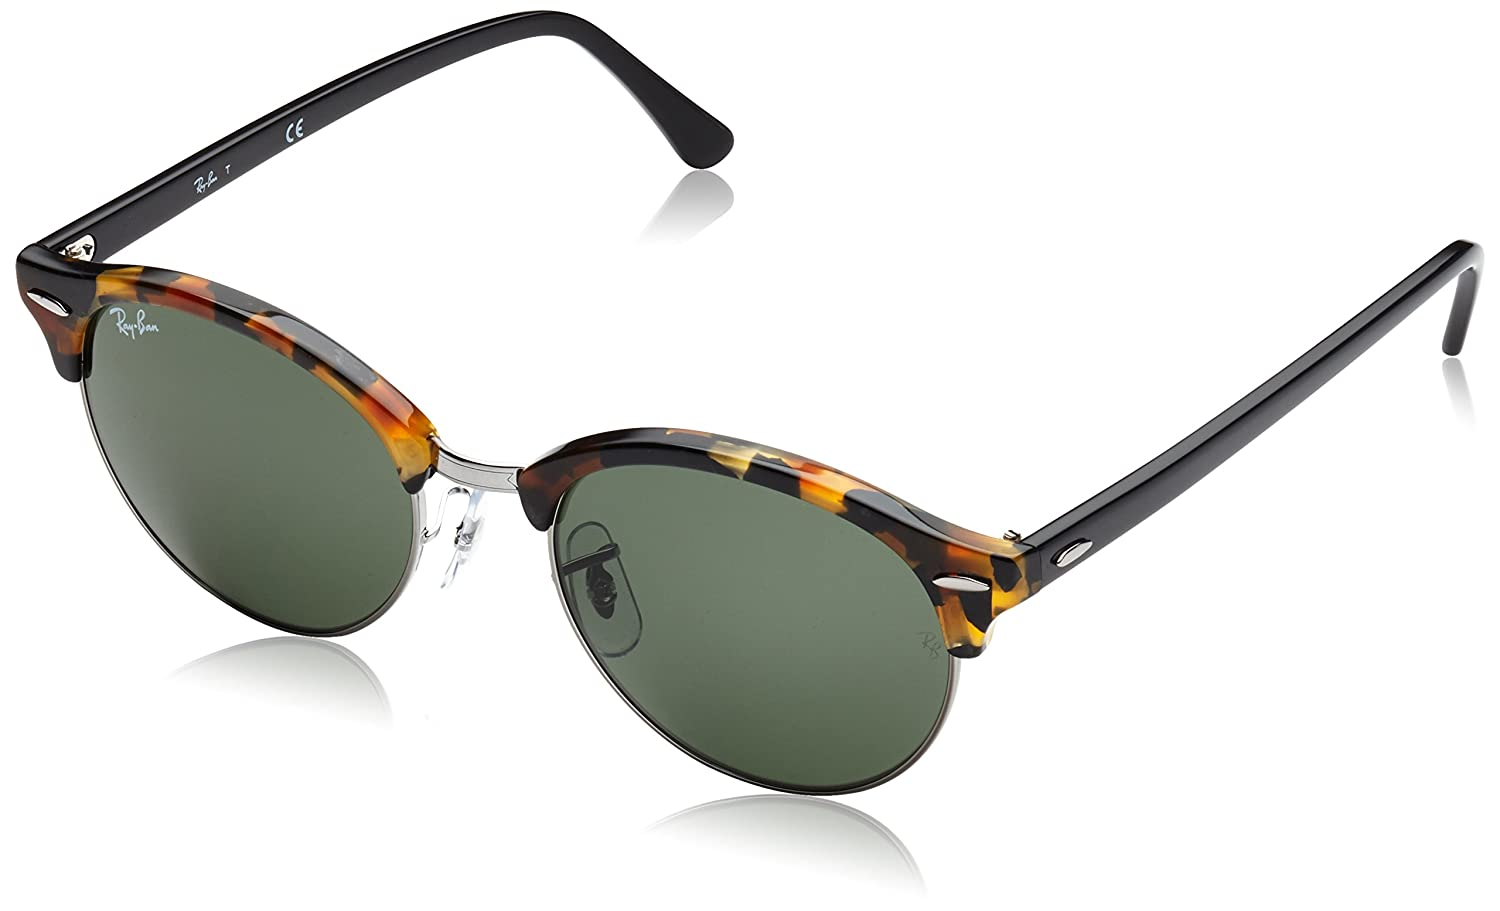 83cdf0a2c9b Amazon.com  Ray-Ban CLUBROUND Round Sunglasses